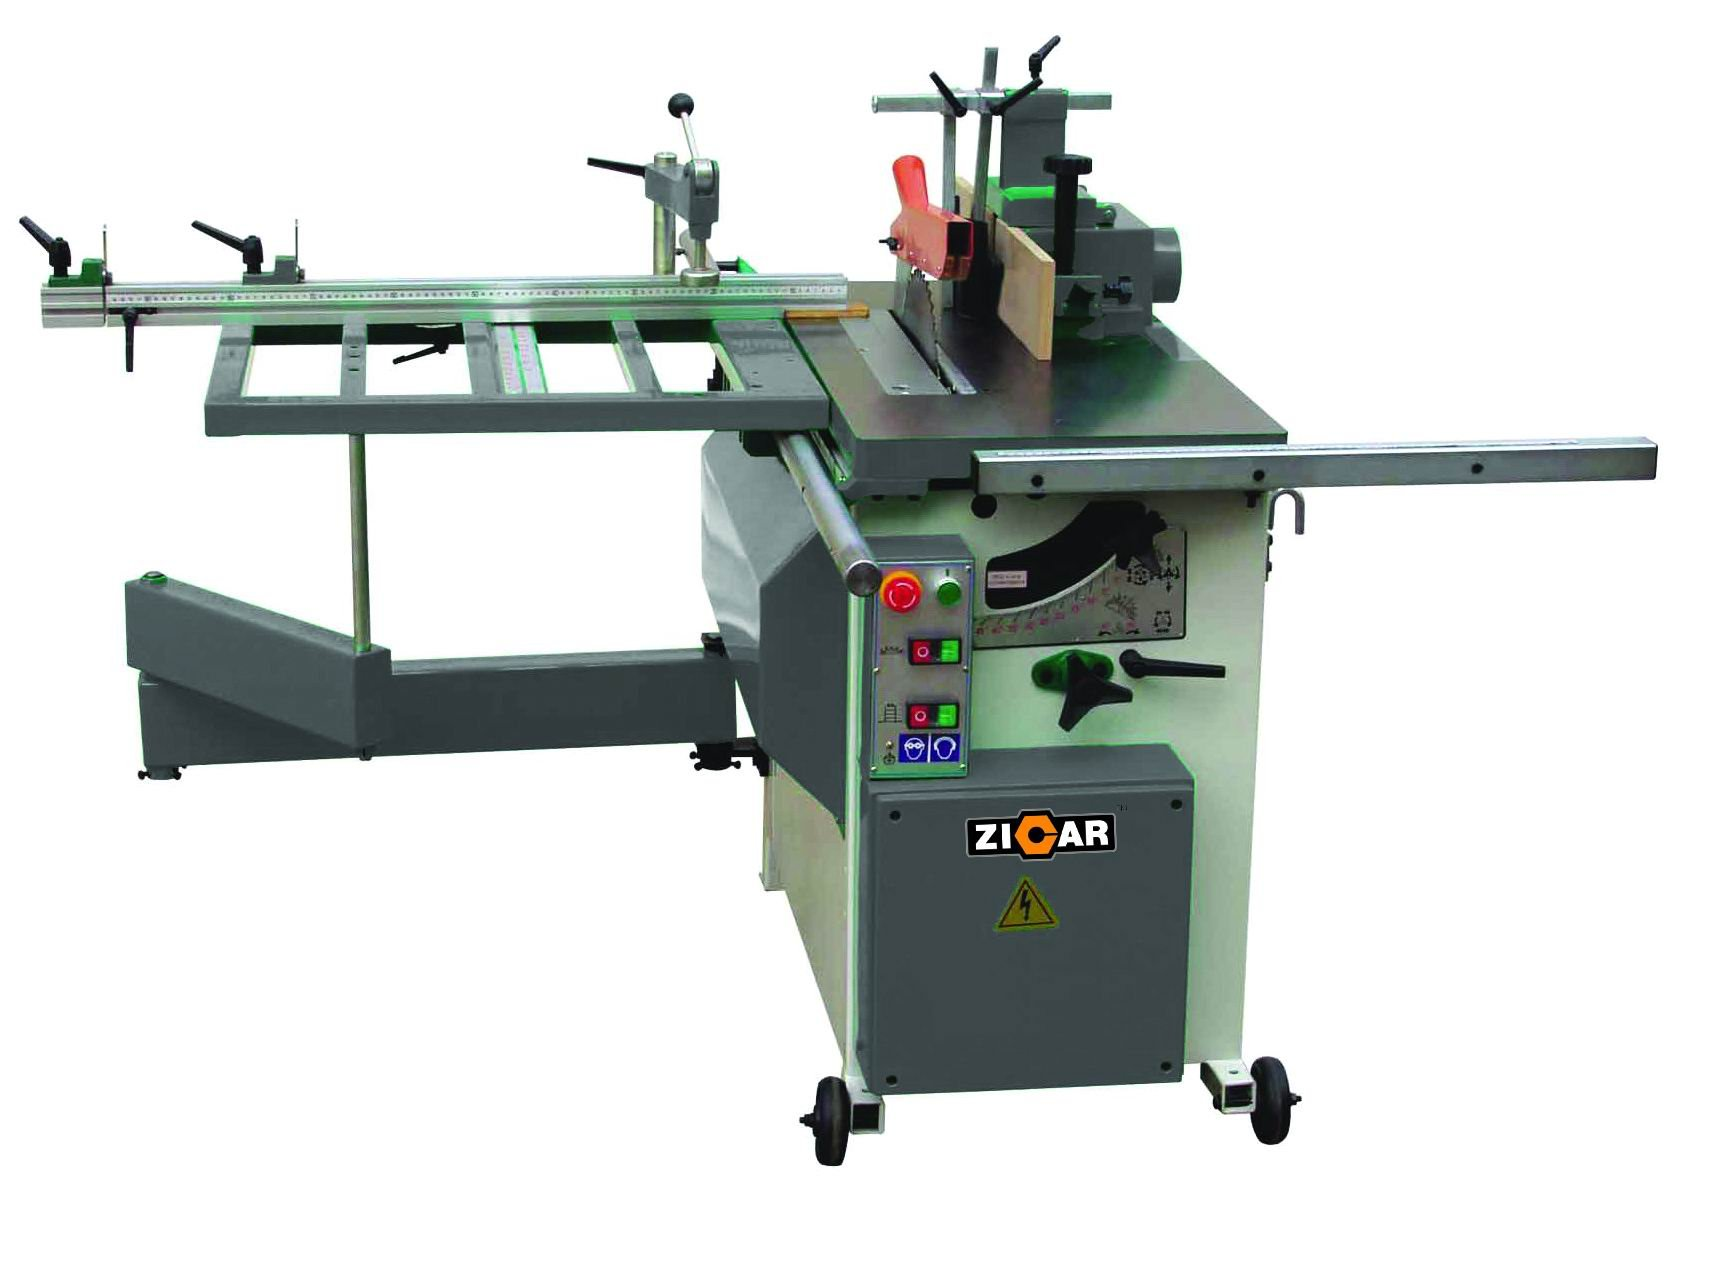 Woodworking machinery in South Africa